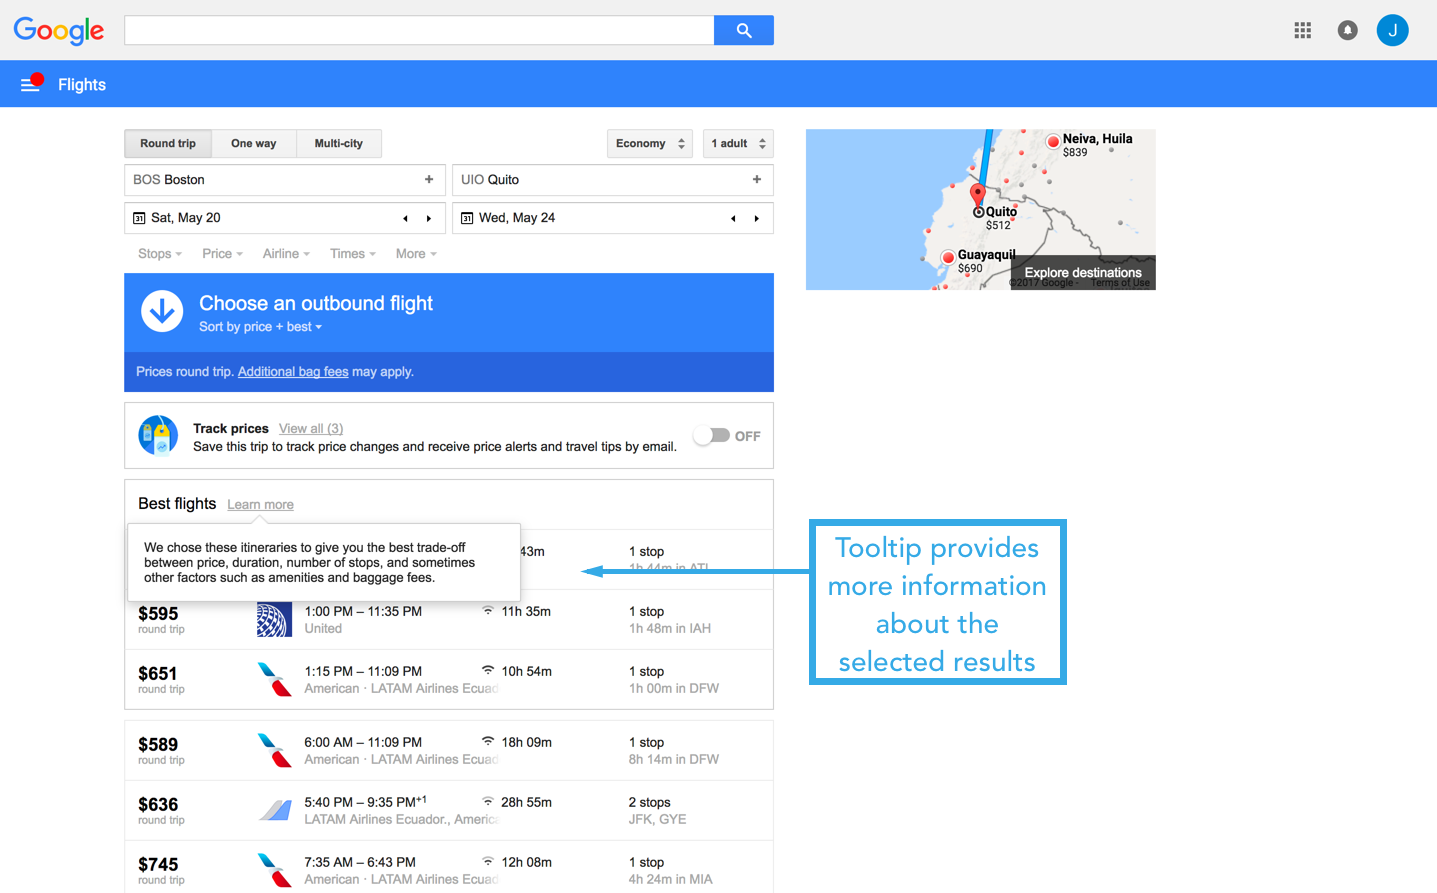 google flights search results 7-1.png